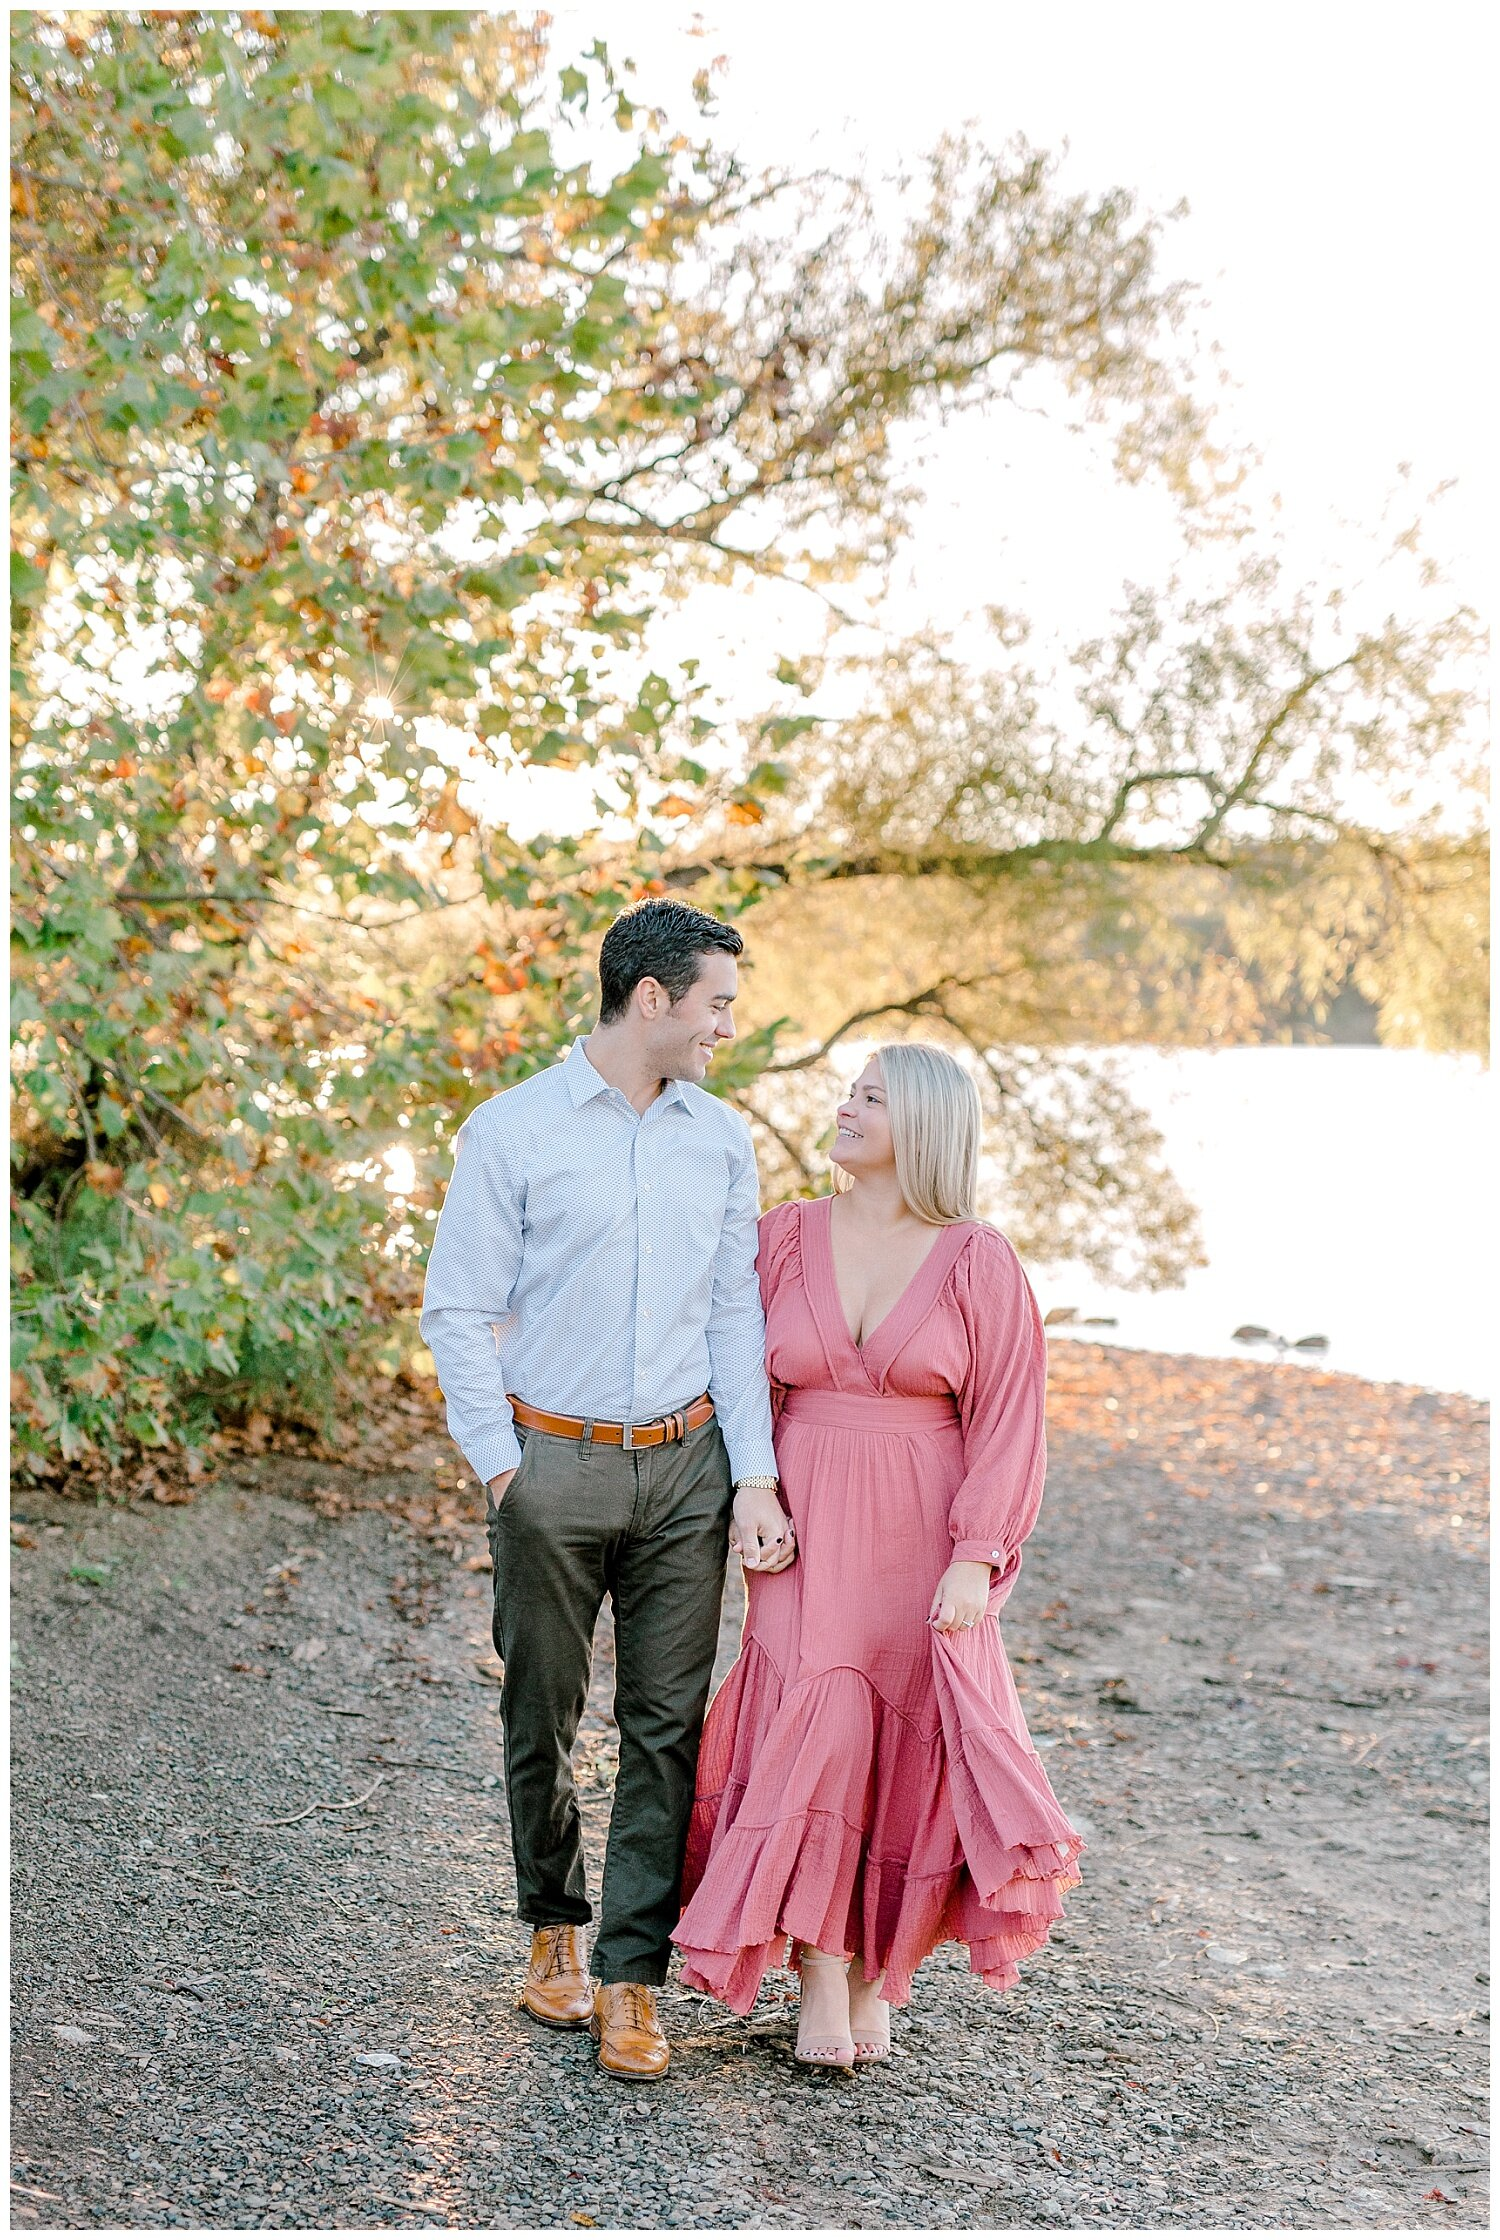 Peace Valley Park Doylestown bucks county PA fall sunrise engagement session  lehigh valley pennsylvania based wedding and lifestyle photographer Jeannie Lytle of Lytle Photography Company_0009.jpg